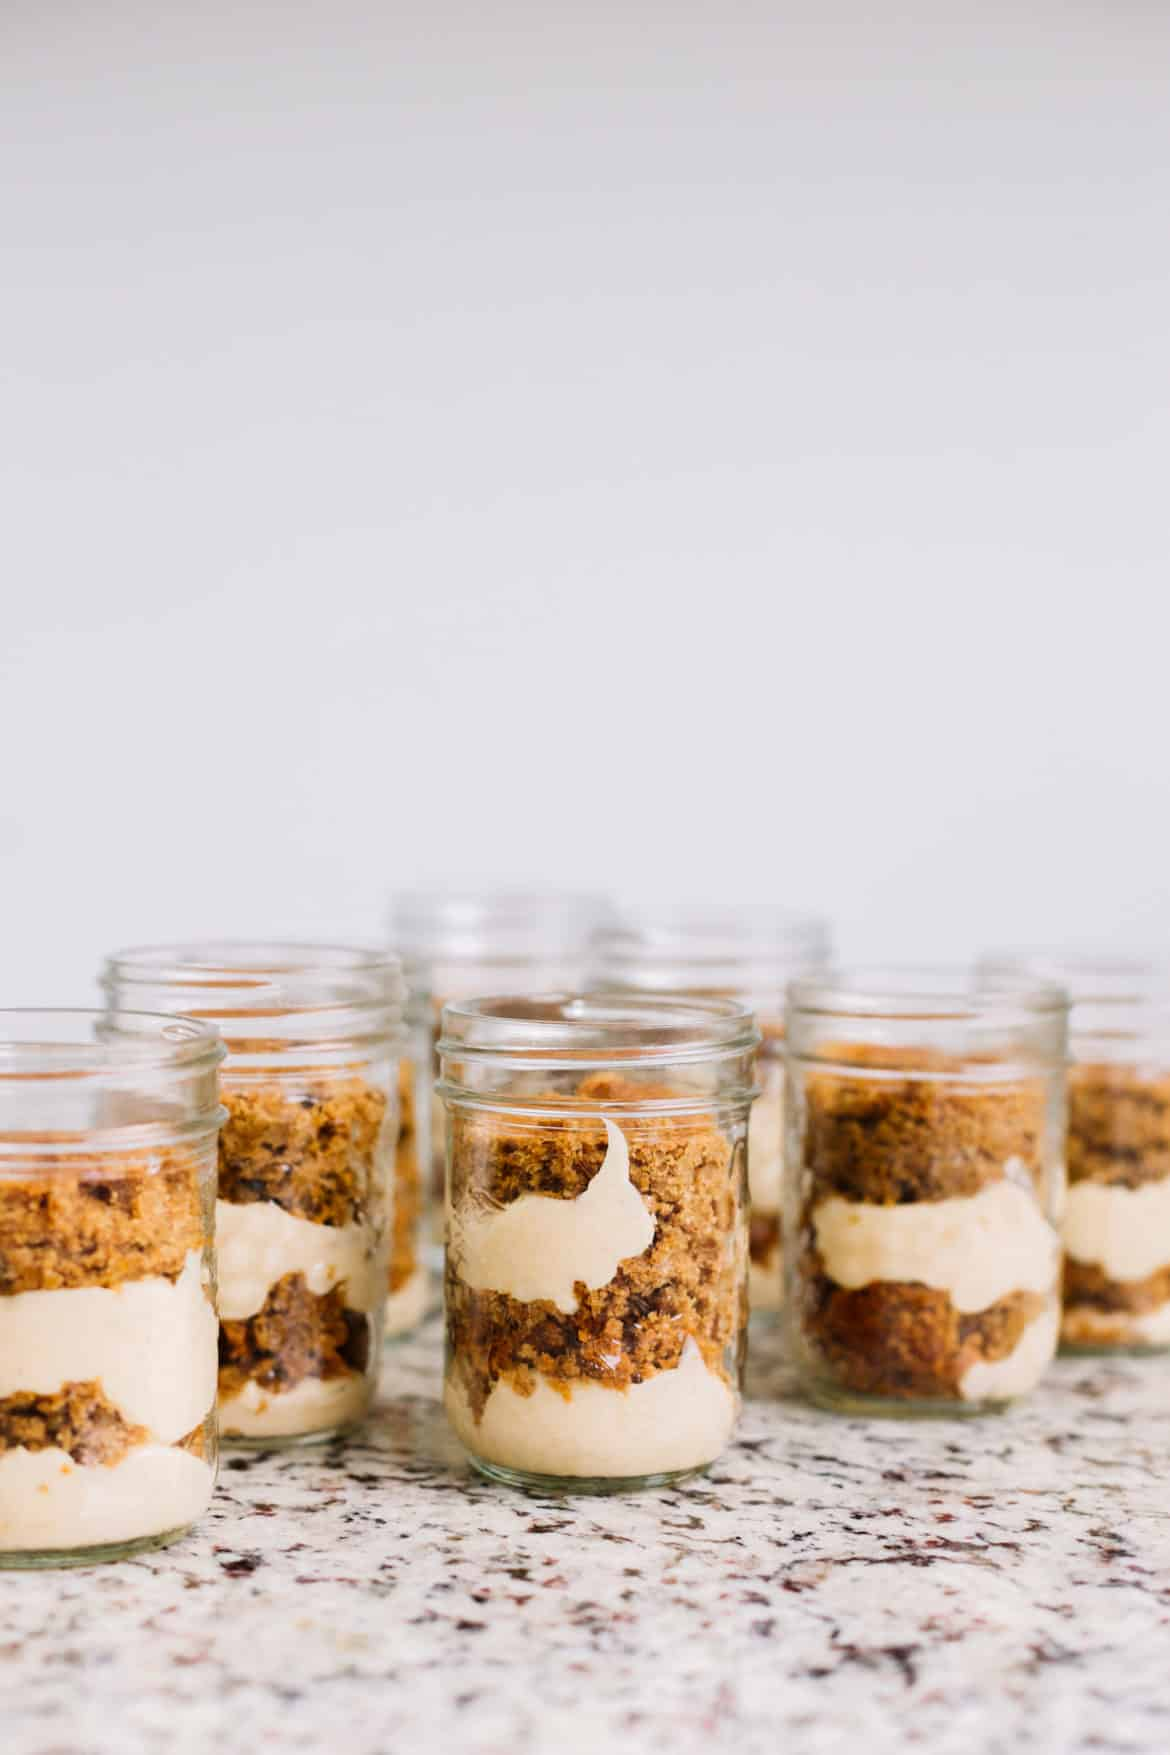 Ginger Cake Trifle with Apple Cinnamon Cream (Gluten Free)